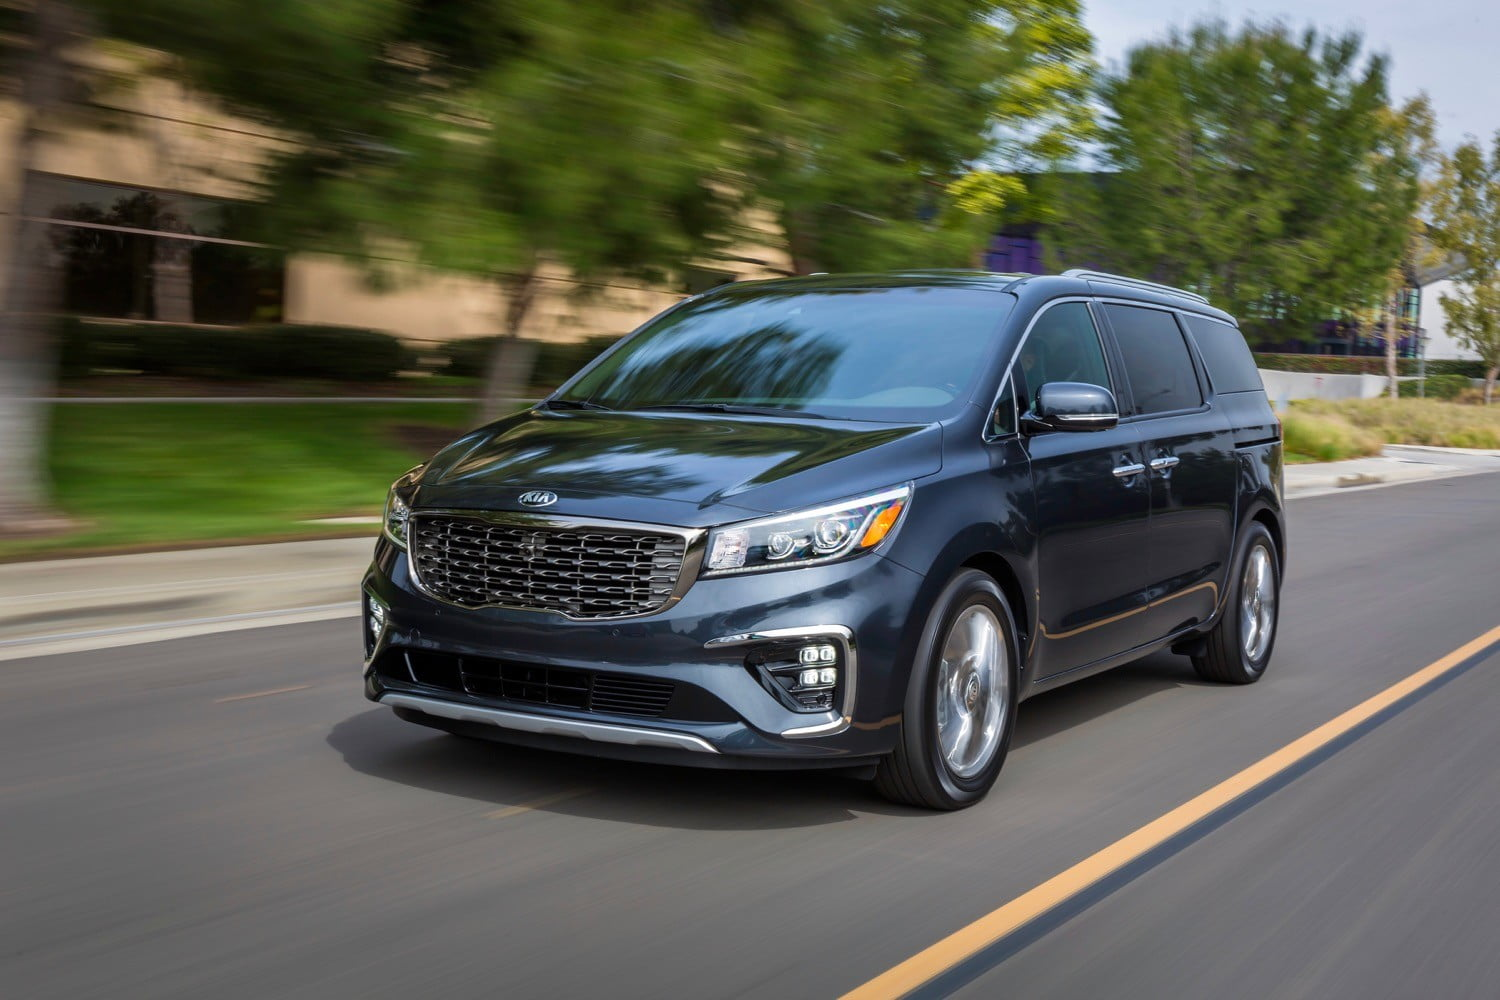 2019 Best Minivan The Best Minivans for 2019 | Digital Trends